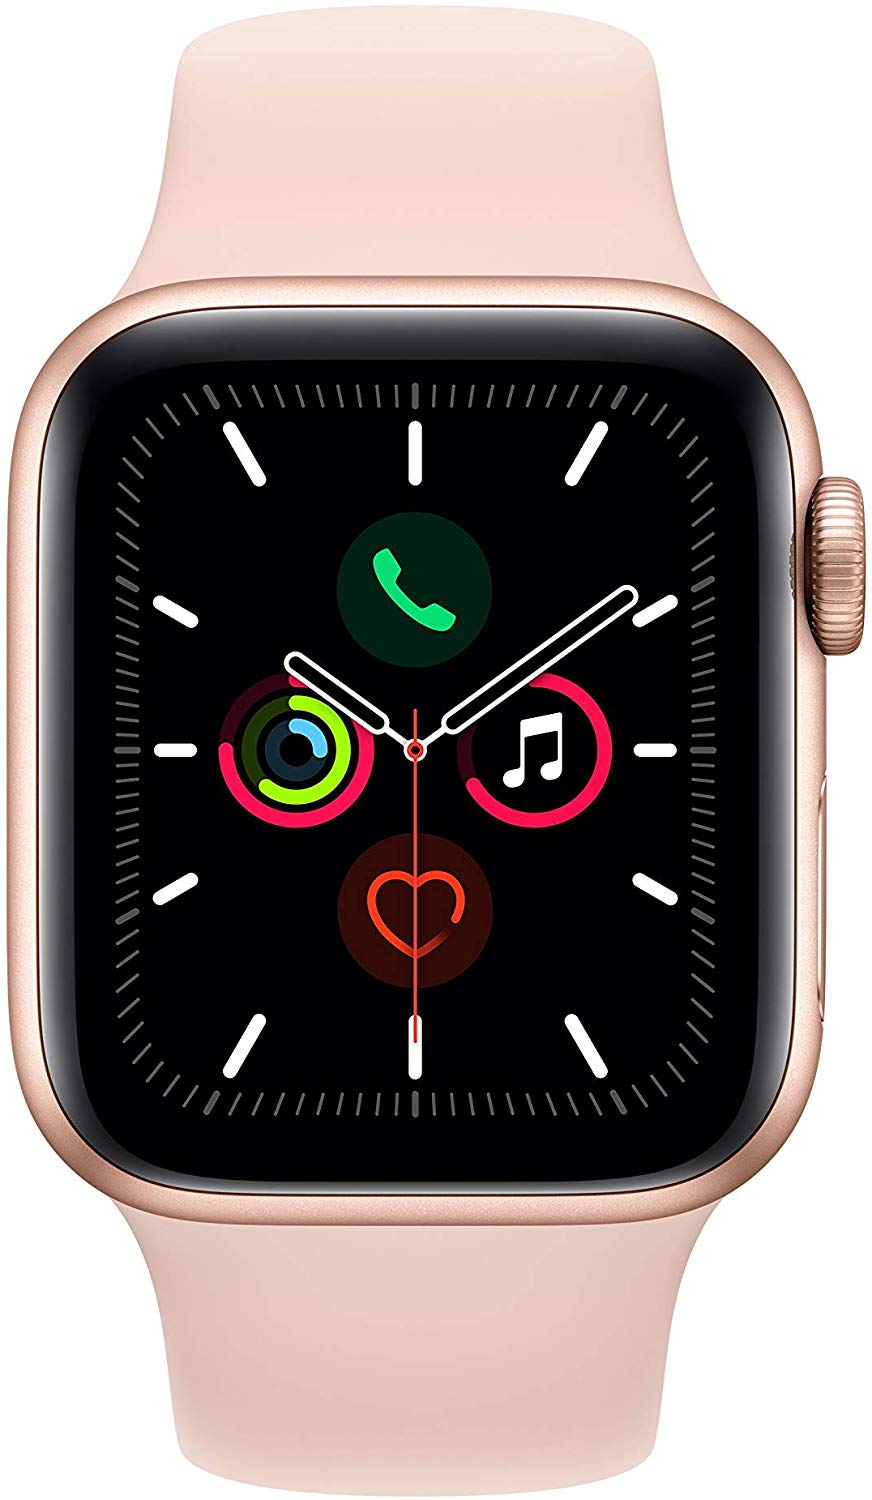 Apple watch series 5 (40mm) specs